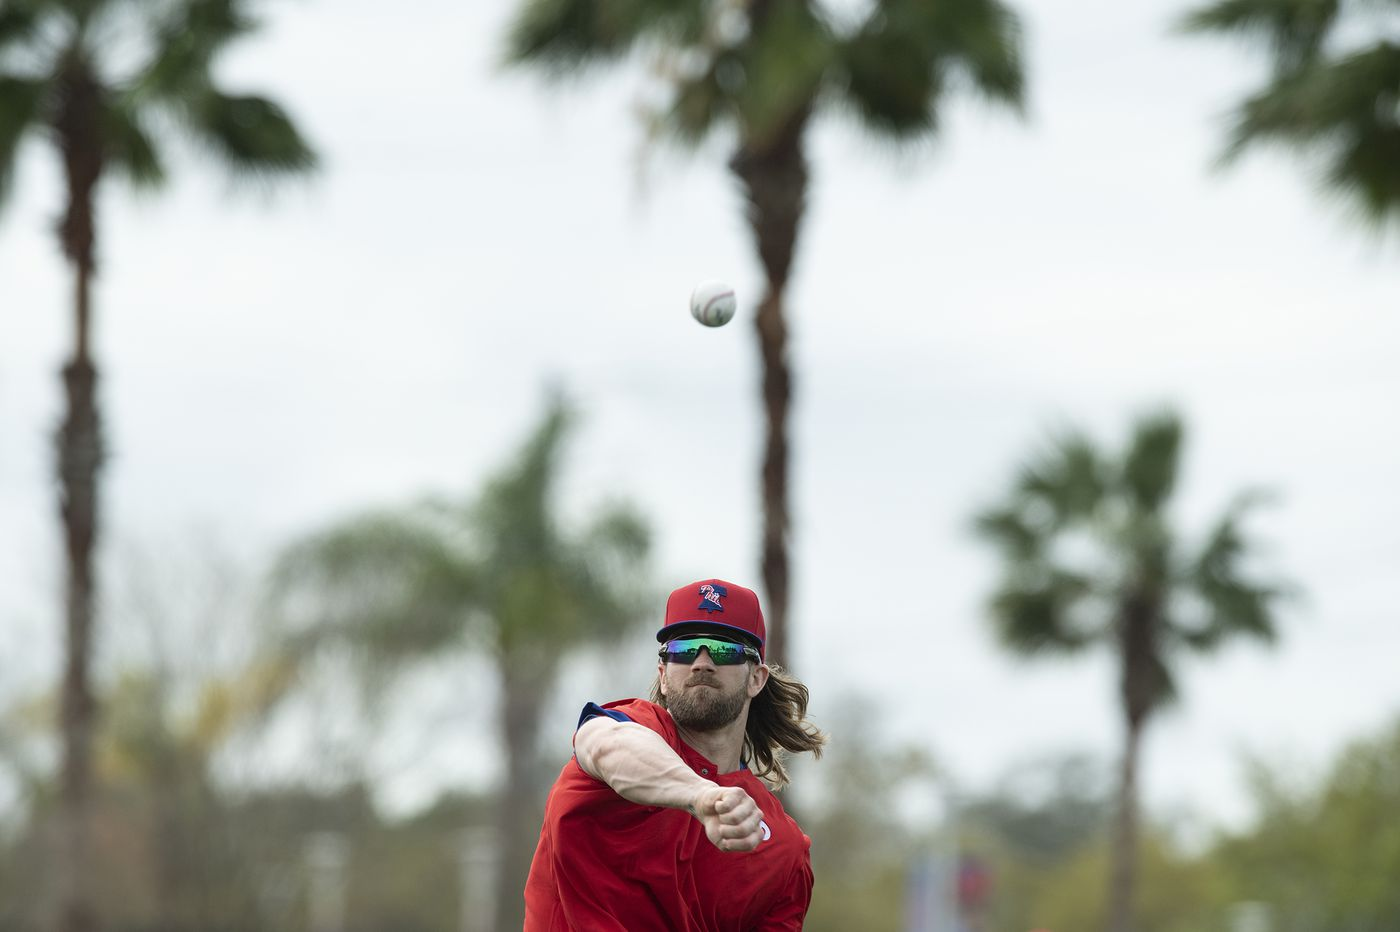 Phillies spring training 2020: Schedule, how to watch and stream